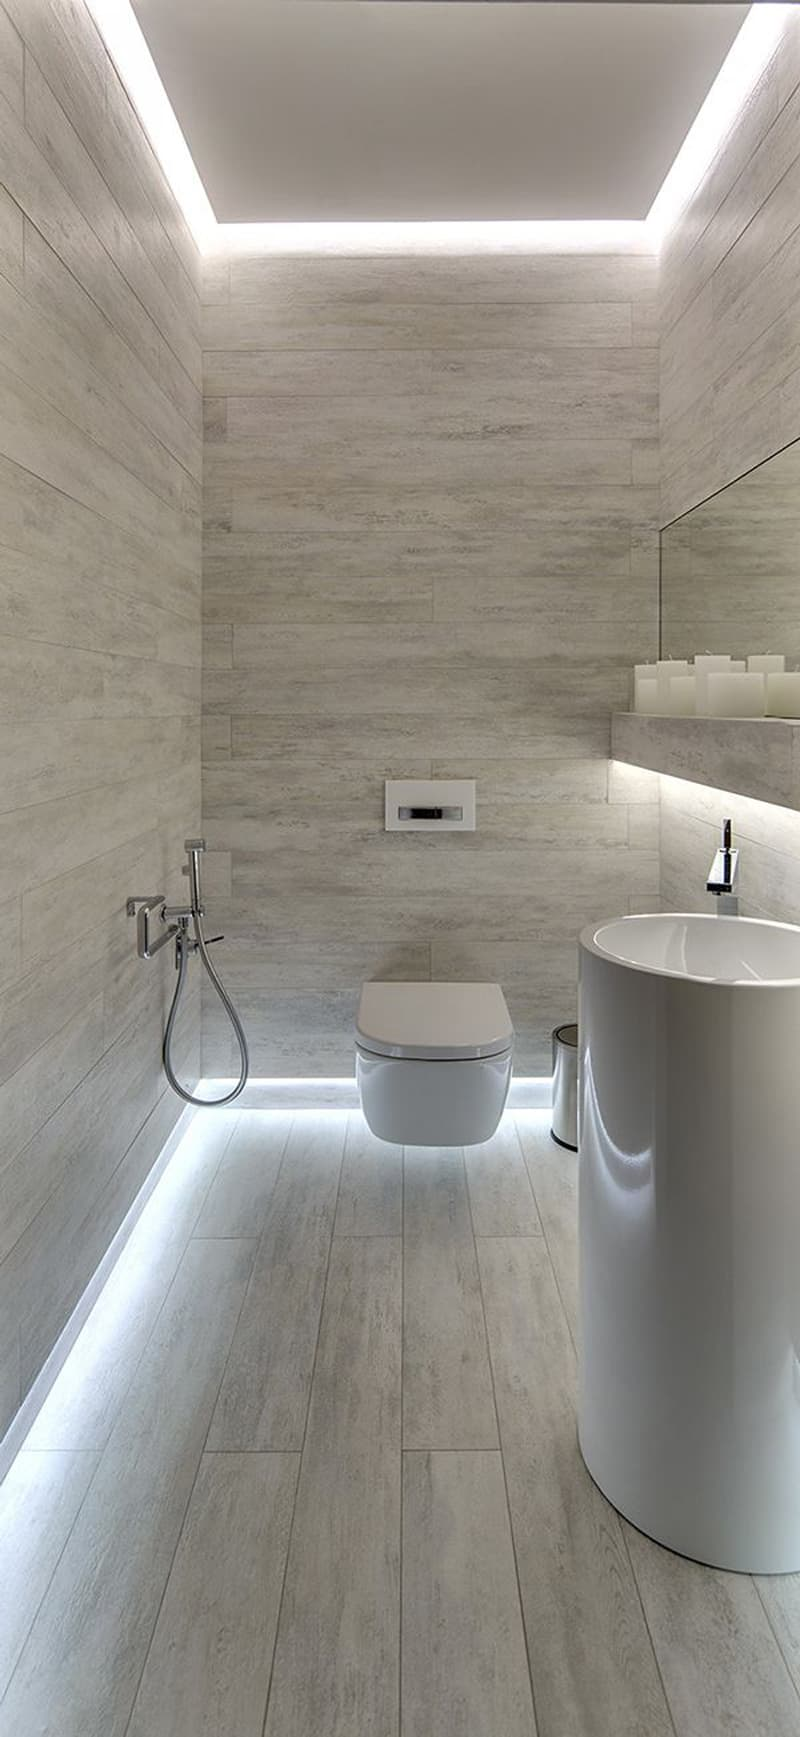 How to light your bathroom right led light bathroom designrulz 29 aloadofball Images